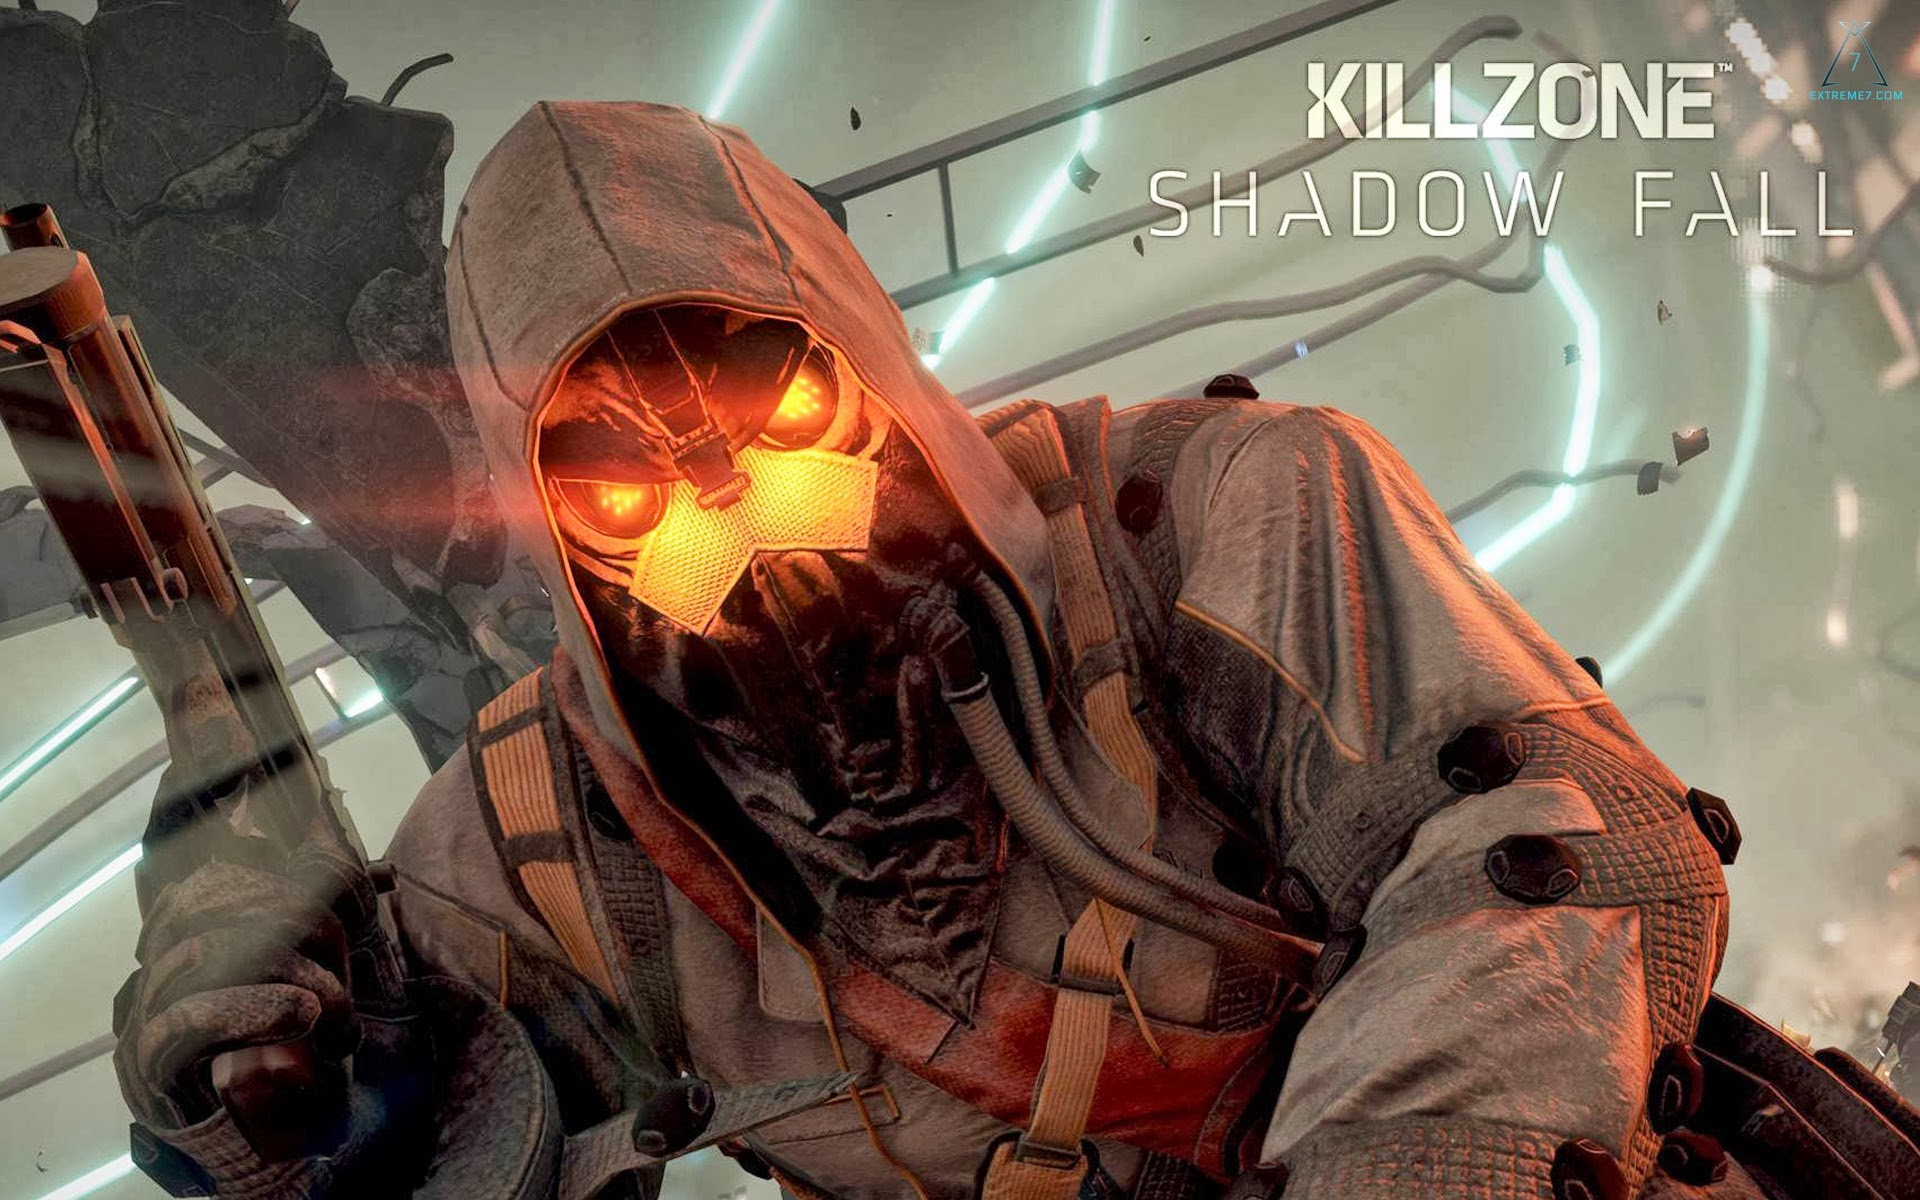 killzone shadow fall wallpapers - 38 Killzone Shadow Fall HD Wallpapers Backgrounds